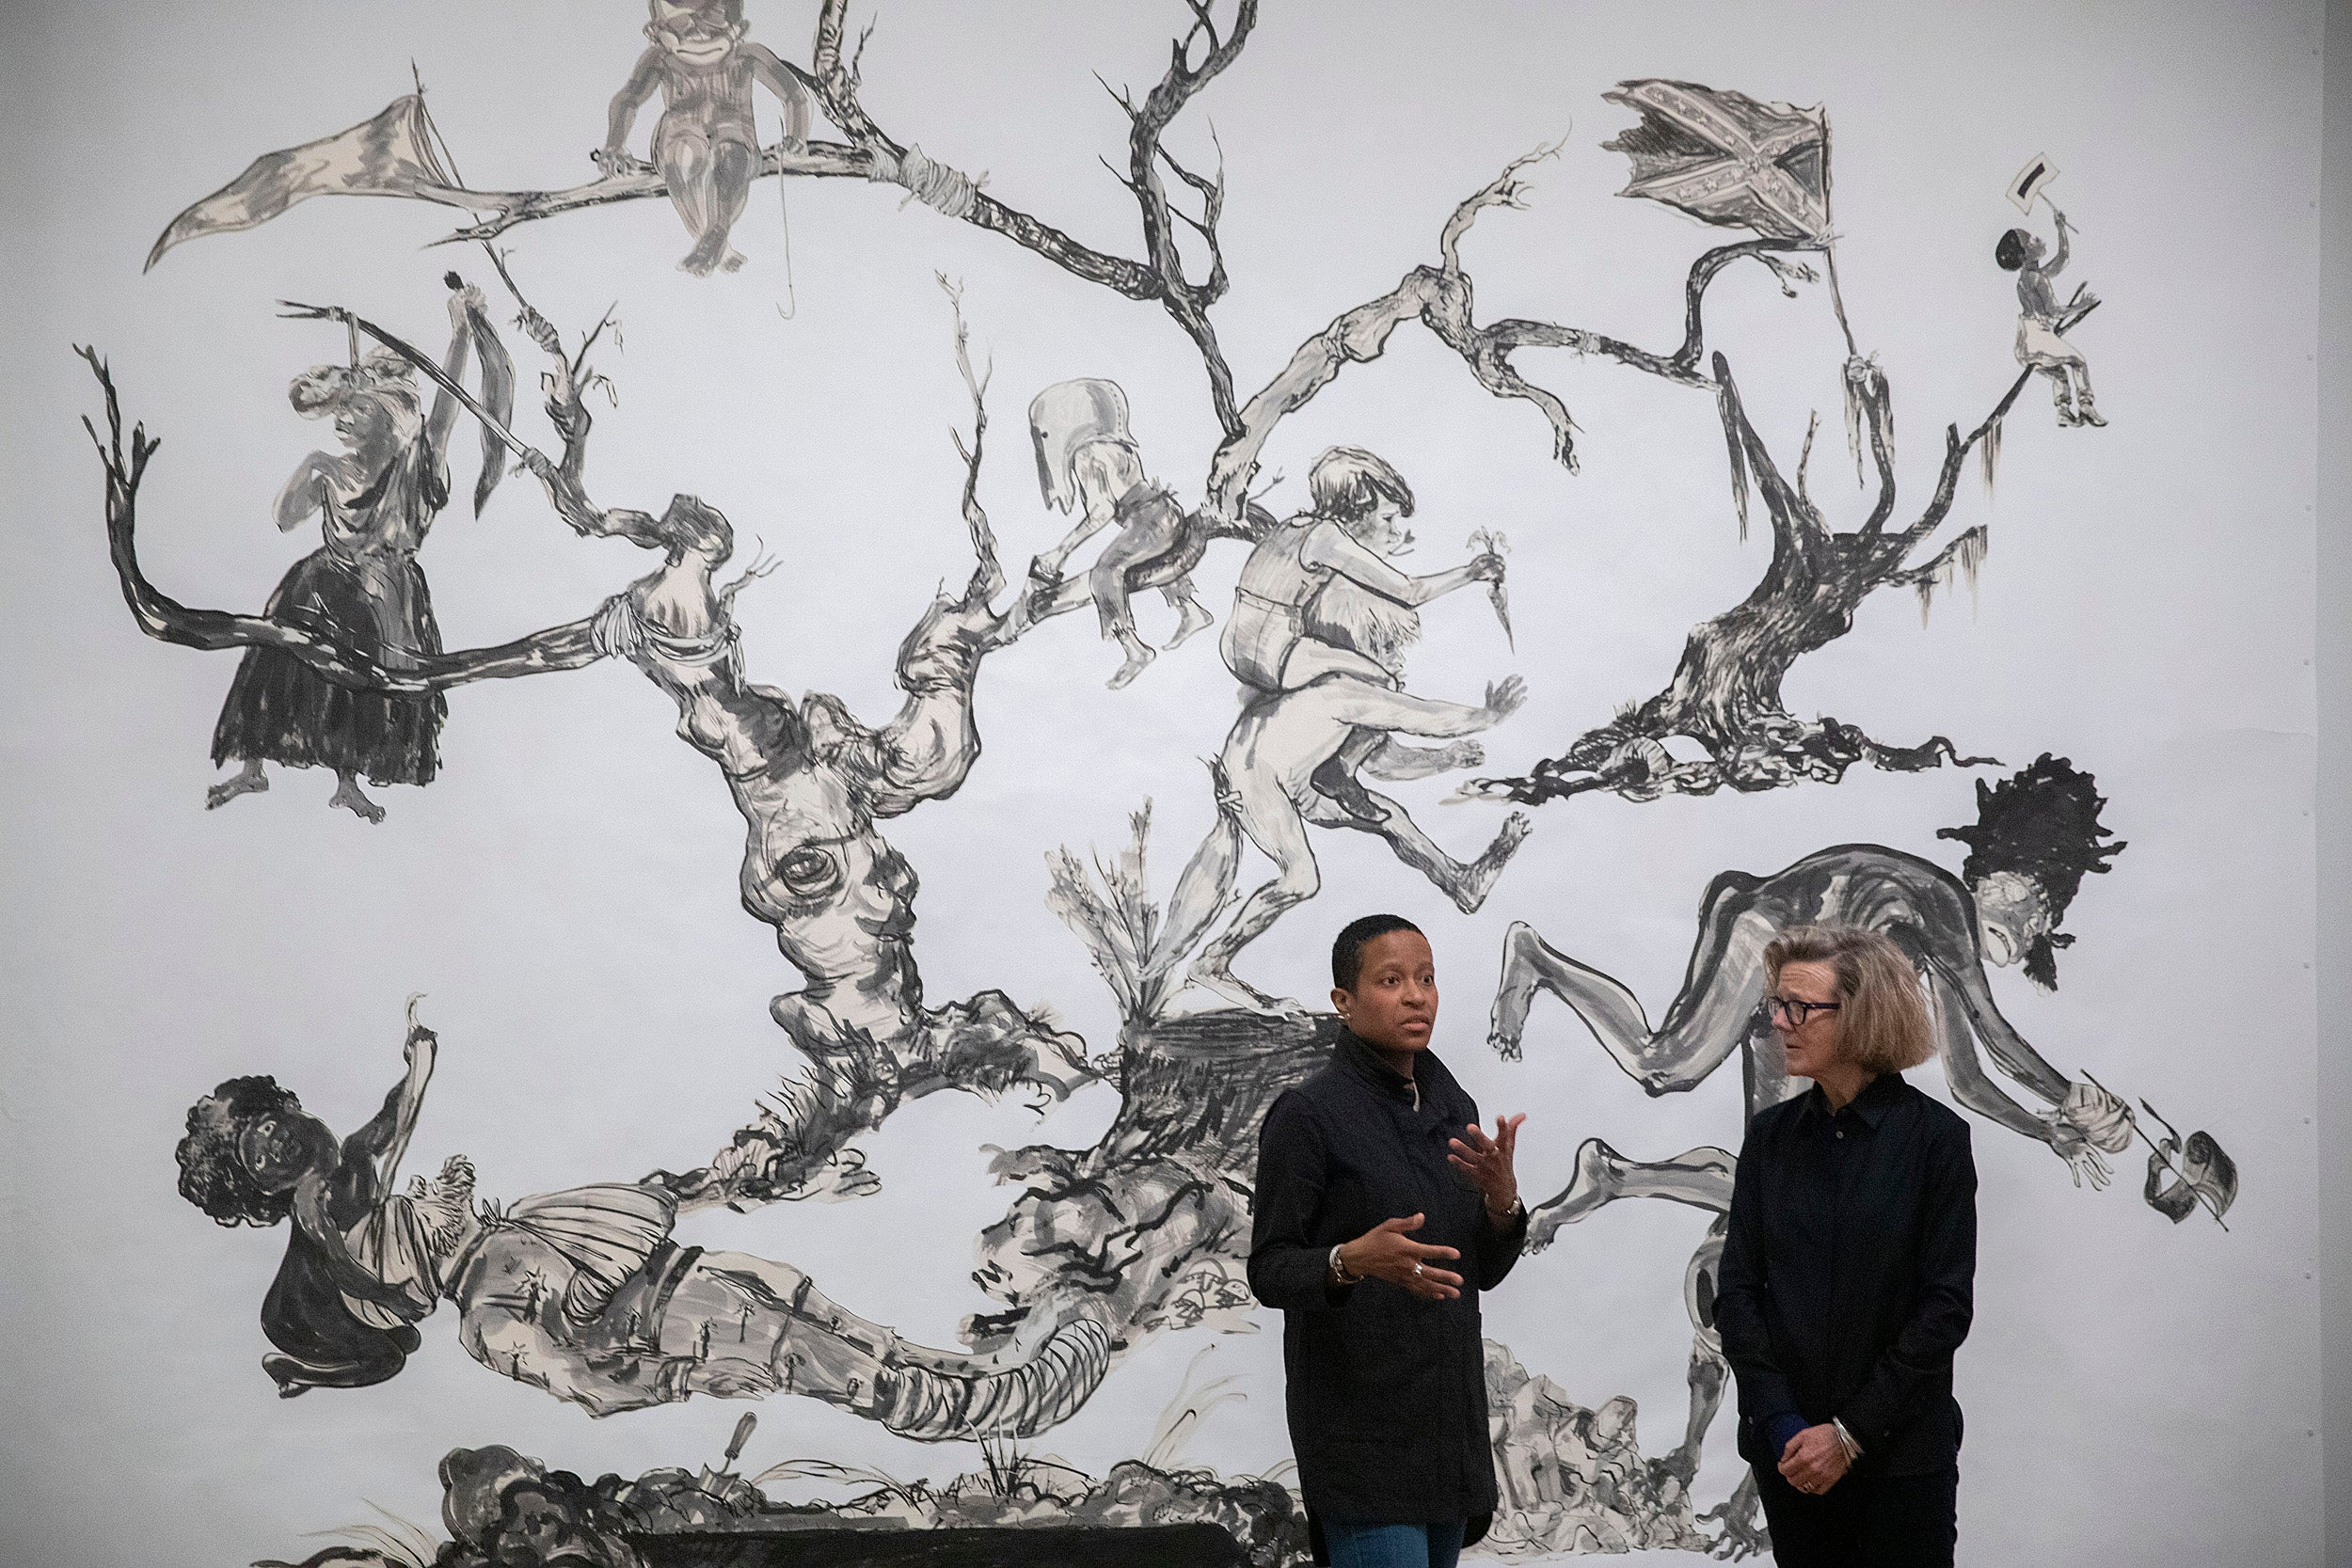 Chassidy Winestock and Mary Schneider Enriquez with Kara Walker's art U.S.A Idioms..